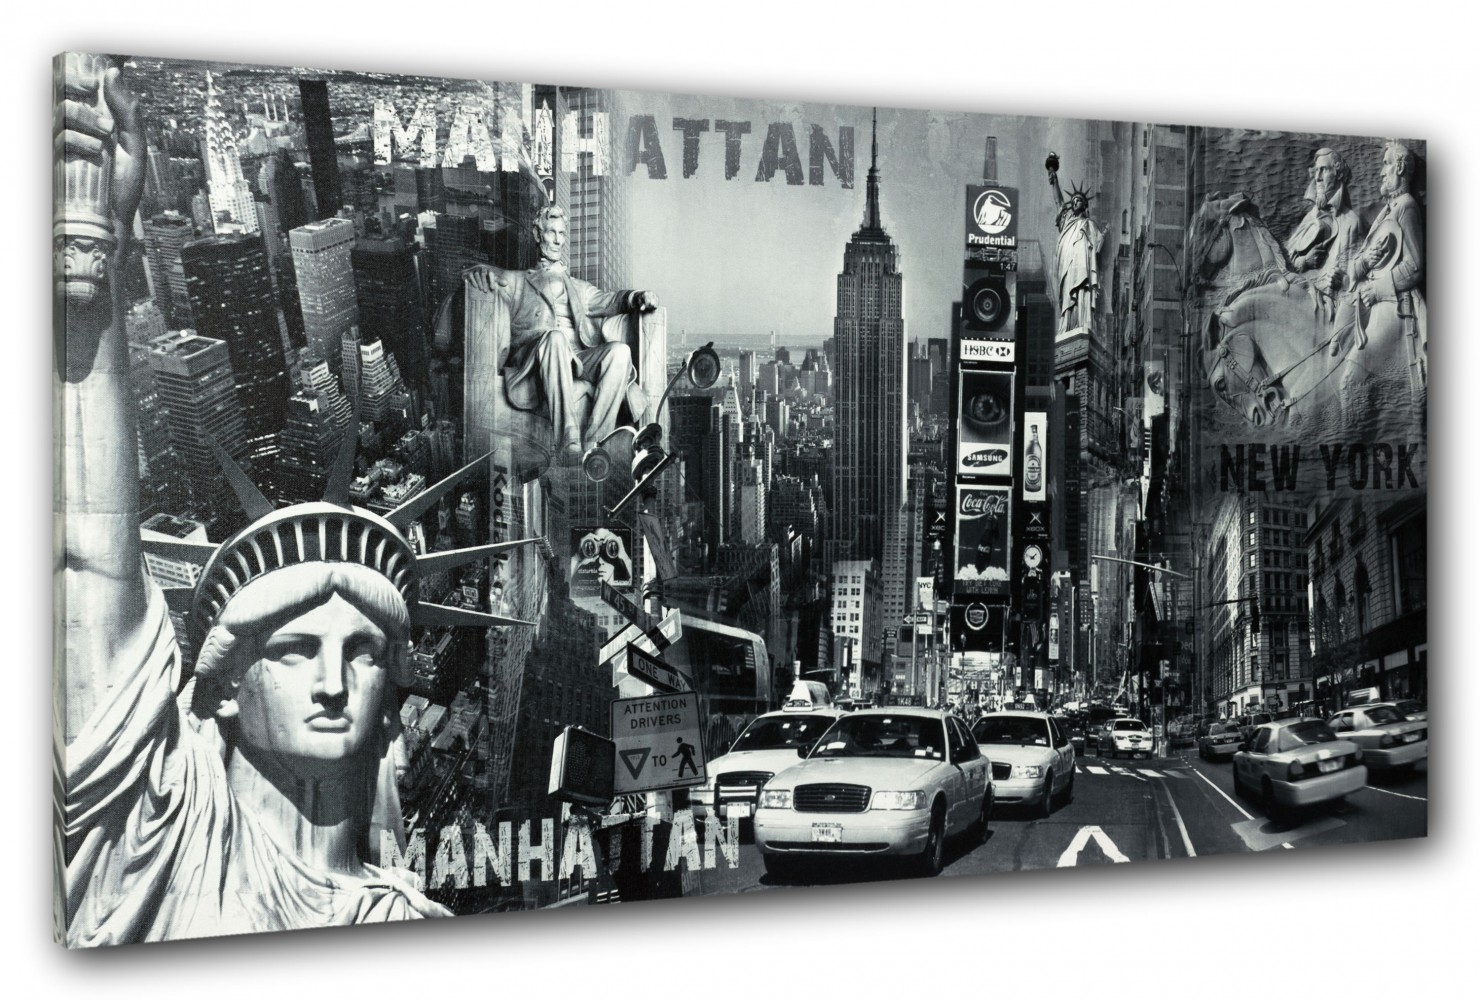 wandbild keilrahmen bild new york freiheitsstatue manhatten streetlife 50x100 cm. Black Bedroom Furniture Sets. Home Design Ideas